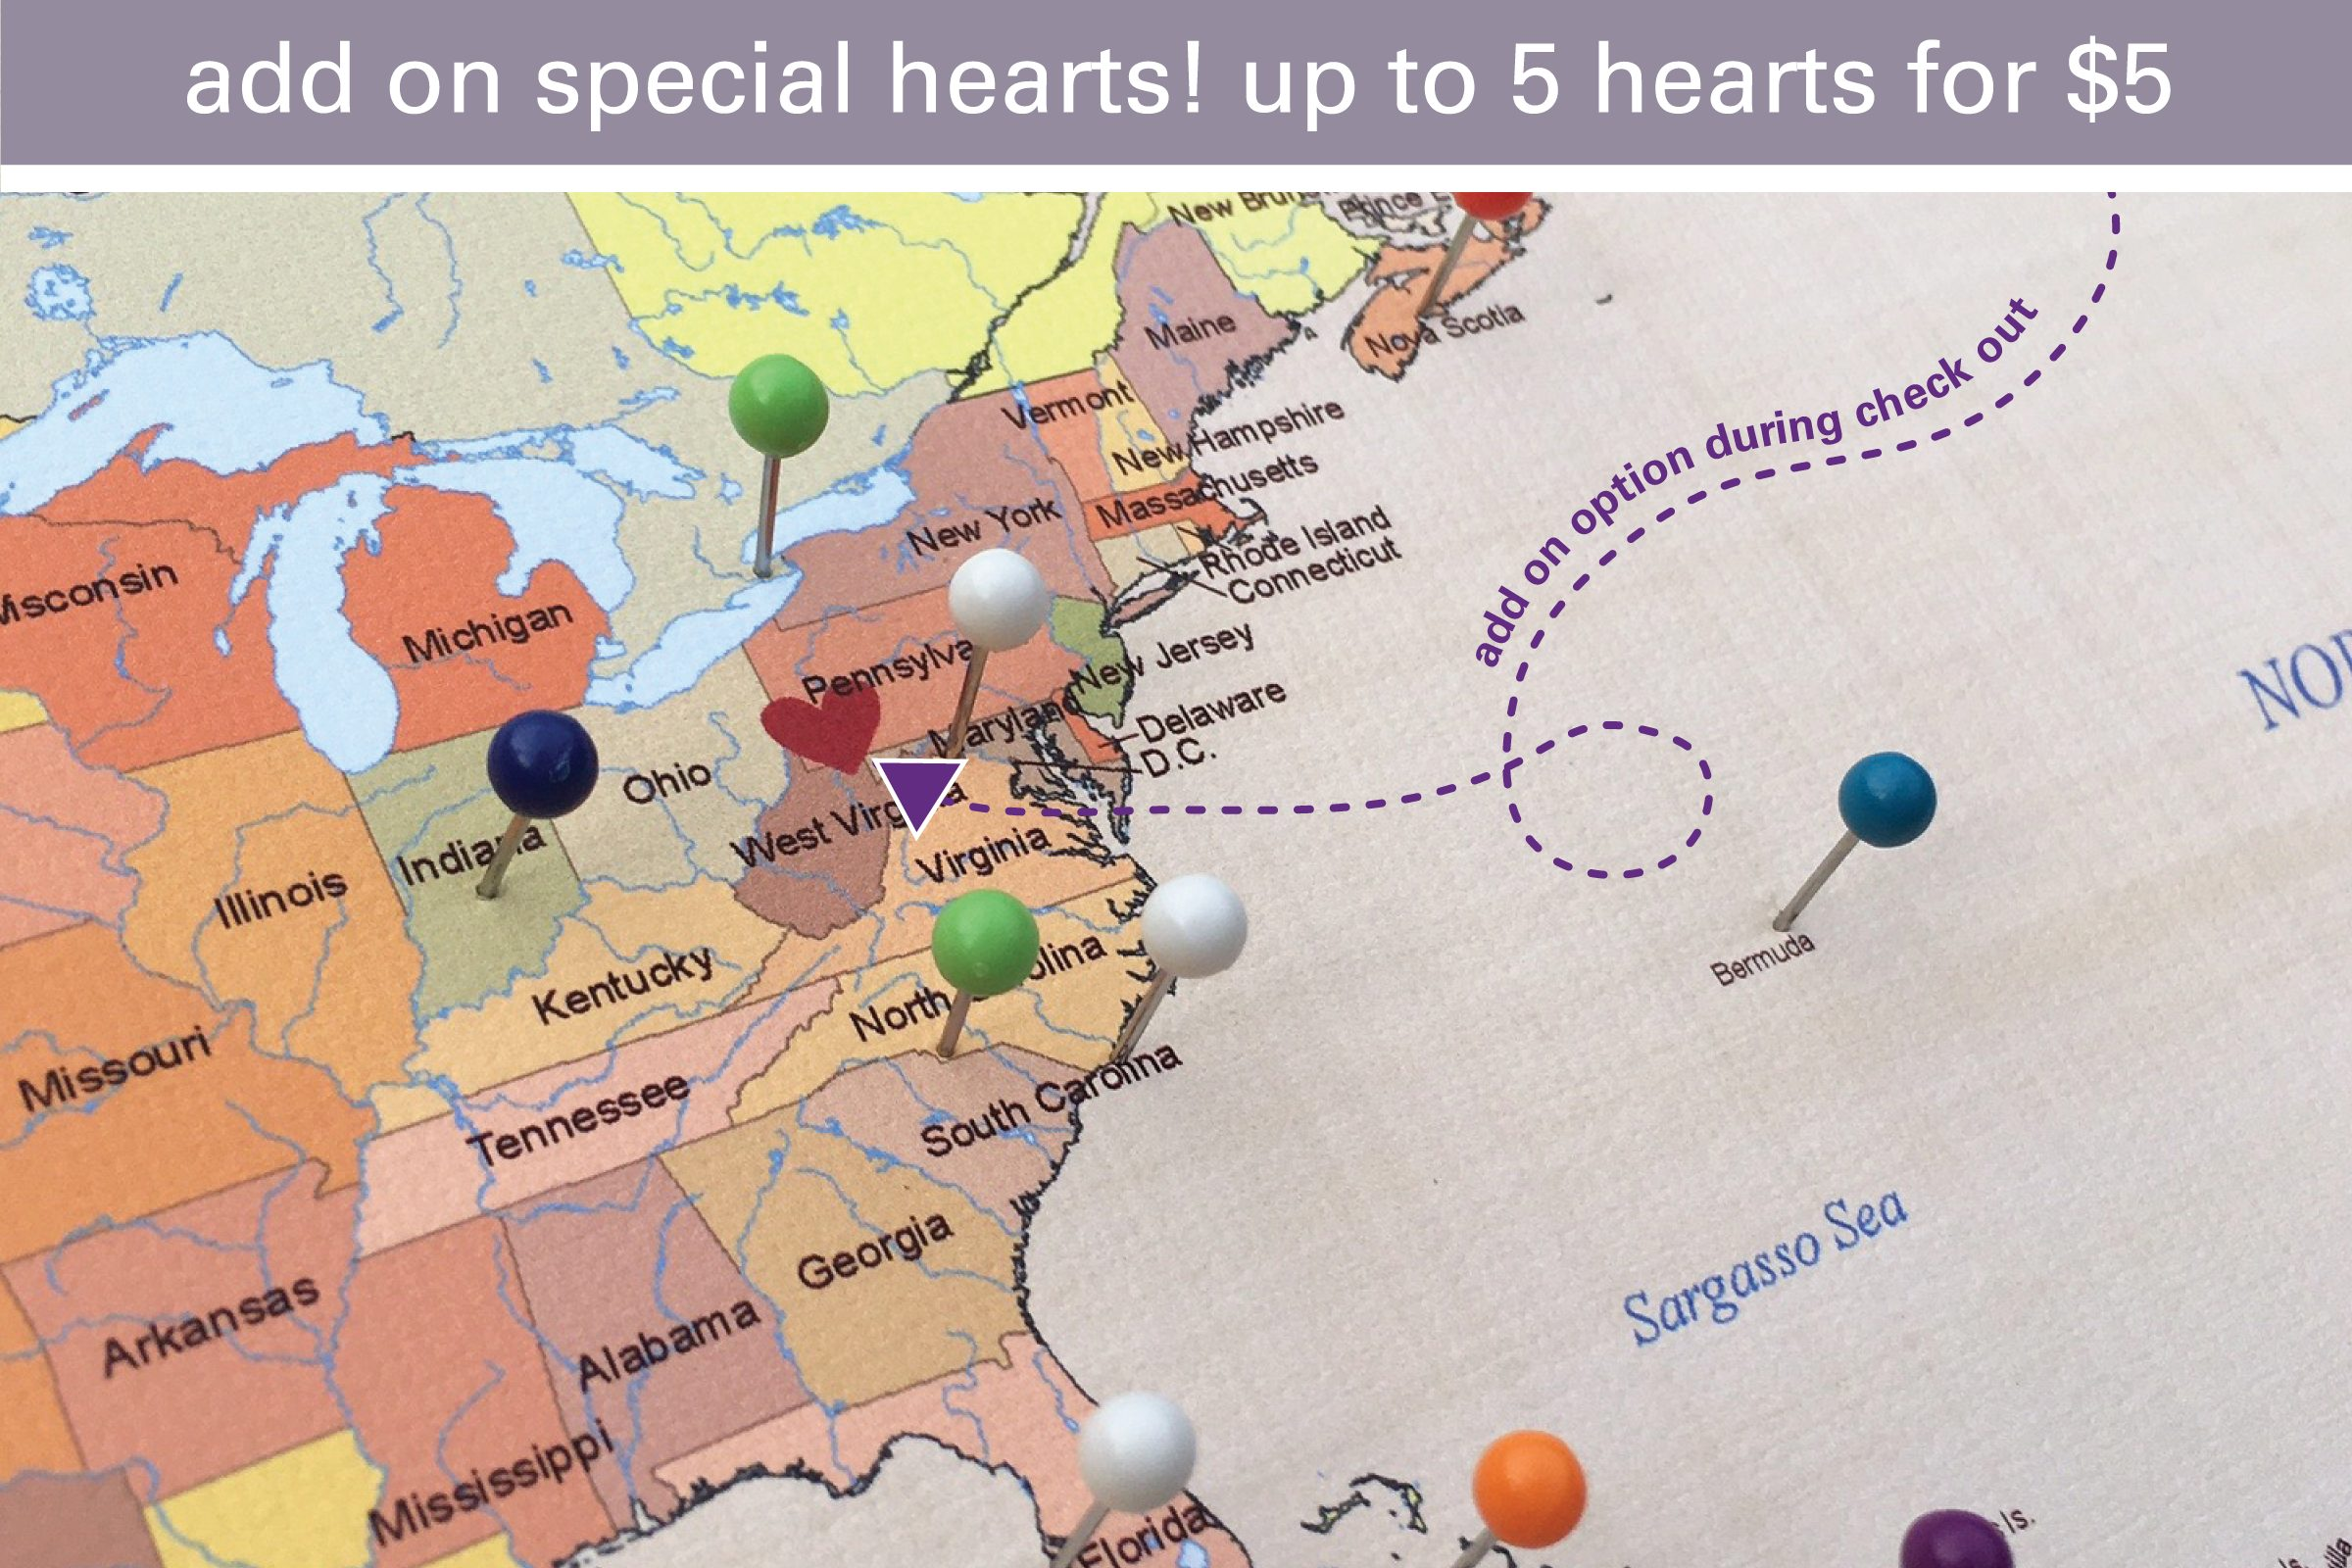 special hearts added to pin map